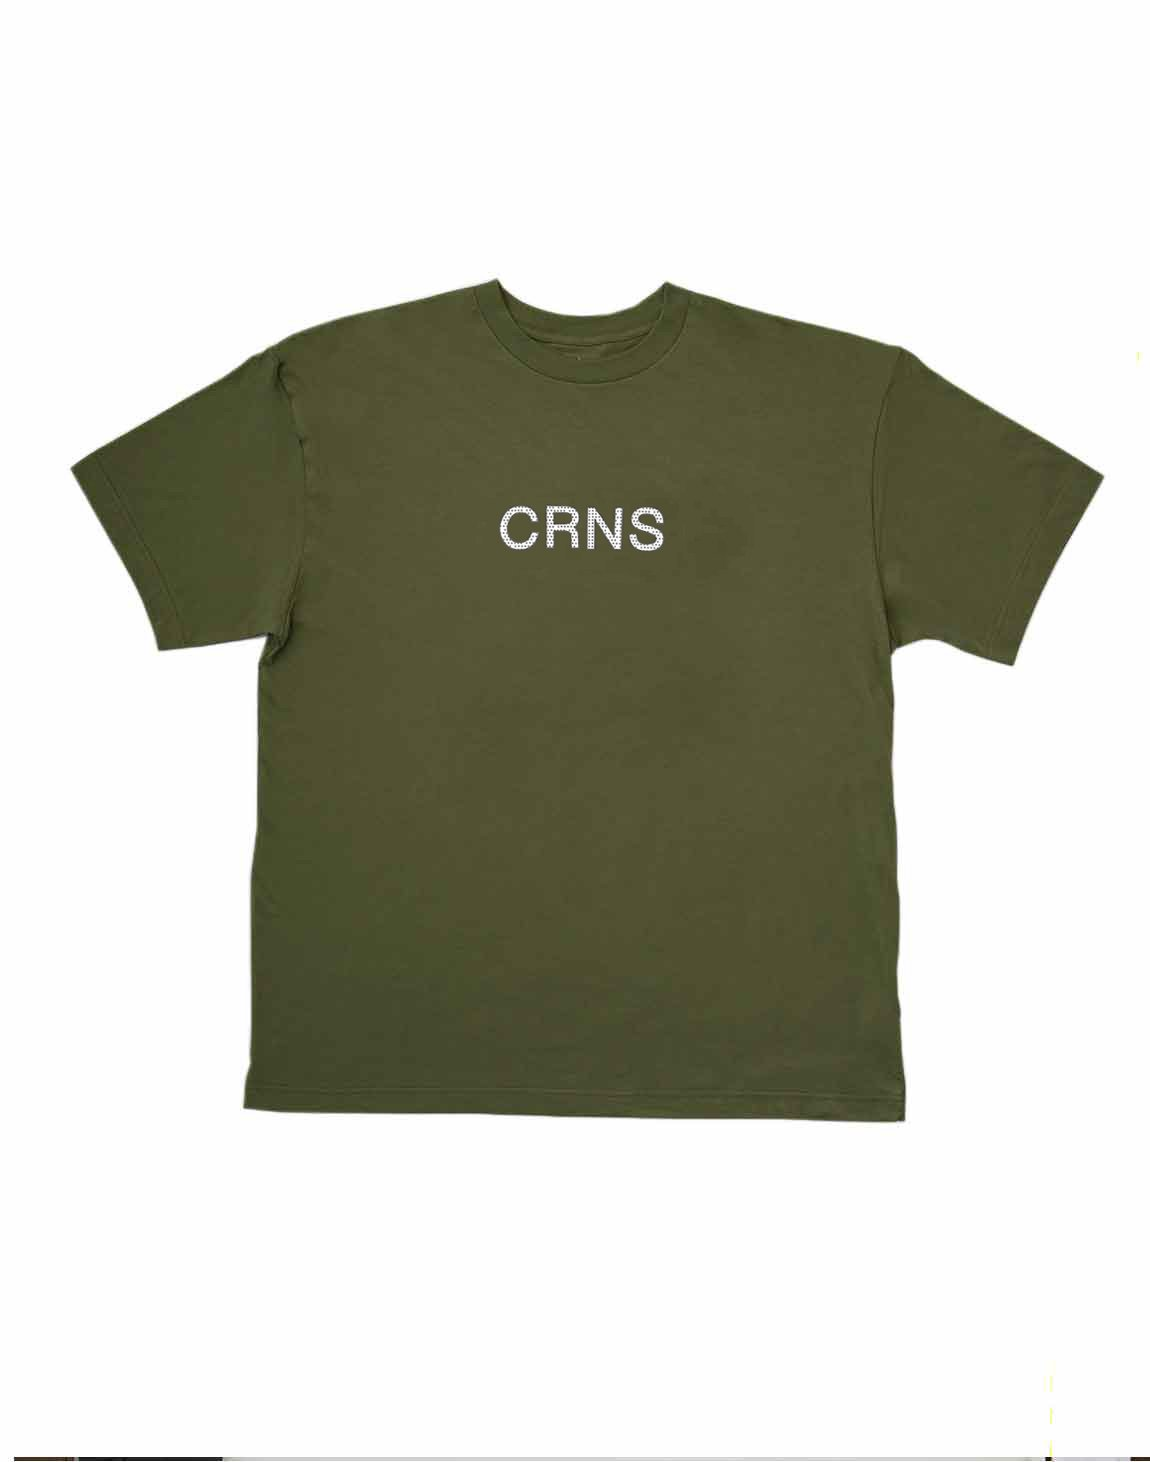 <img class='new_mark_img1' src='https://img.shop-pro.jp/img/new/icons1.gif' style='border:none;display:inline;margin:0px;padding:0px;width:auto;' />CRNS DOT LOGO OVERSIZE T-SHIRTS【KHAKI】